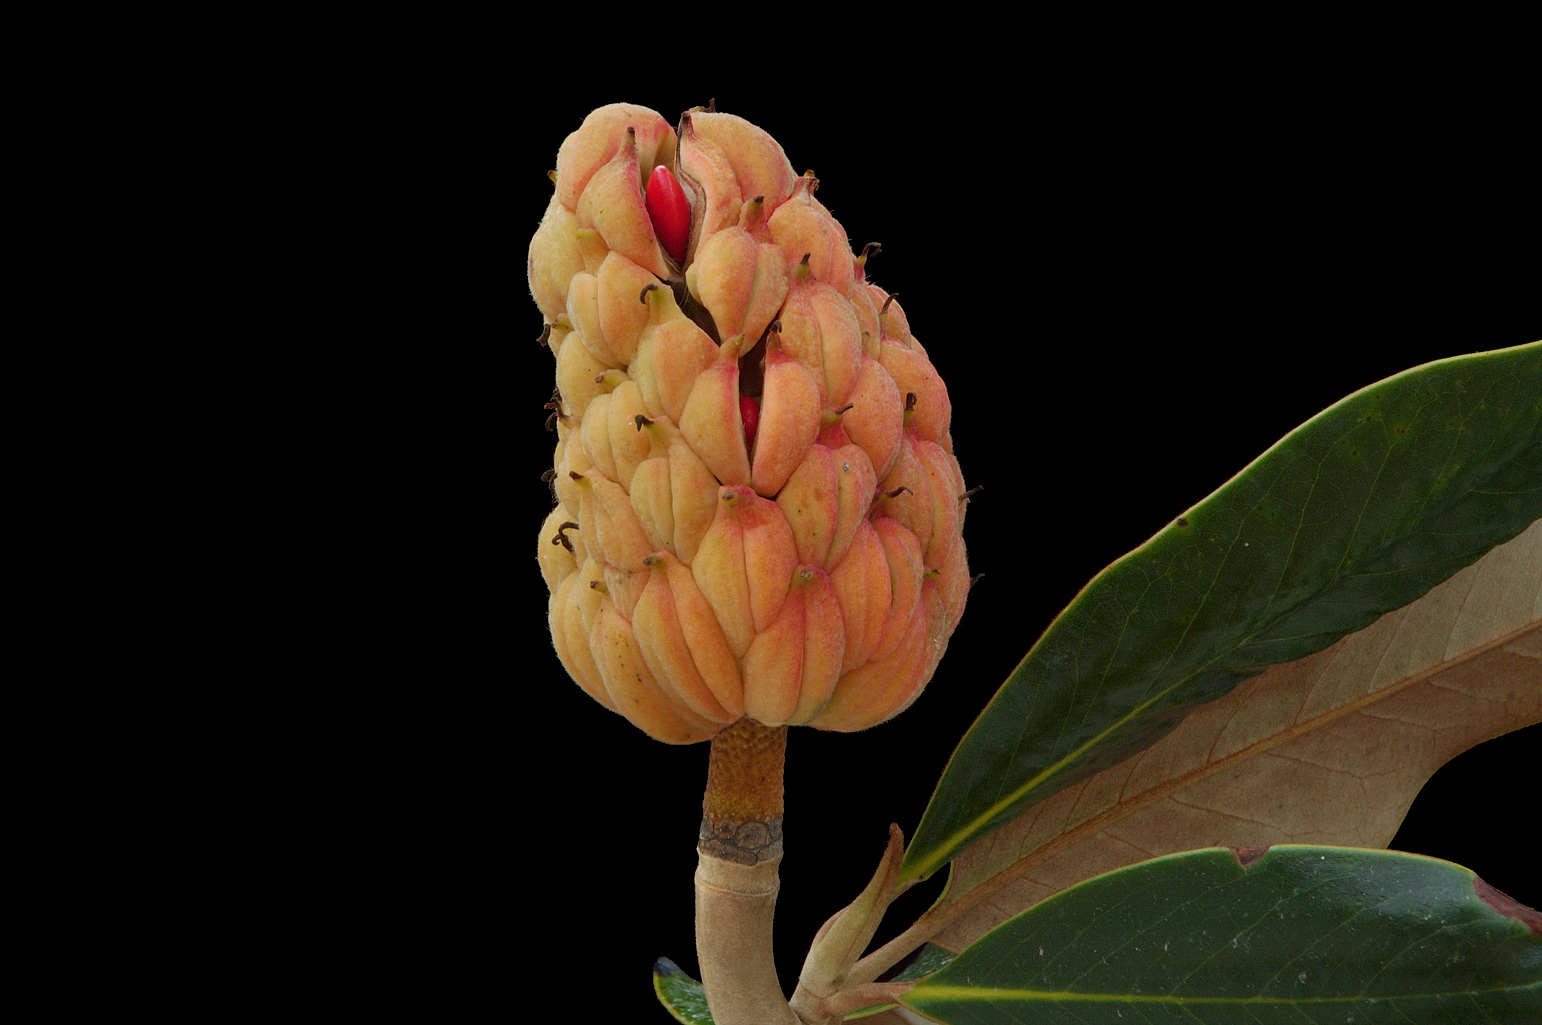 Cone-shaped follicetum; two fruitlets are starting to open and reveal one red seed each; the scars left by each stamen are visible below